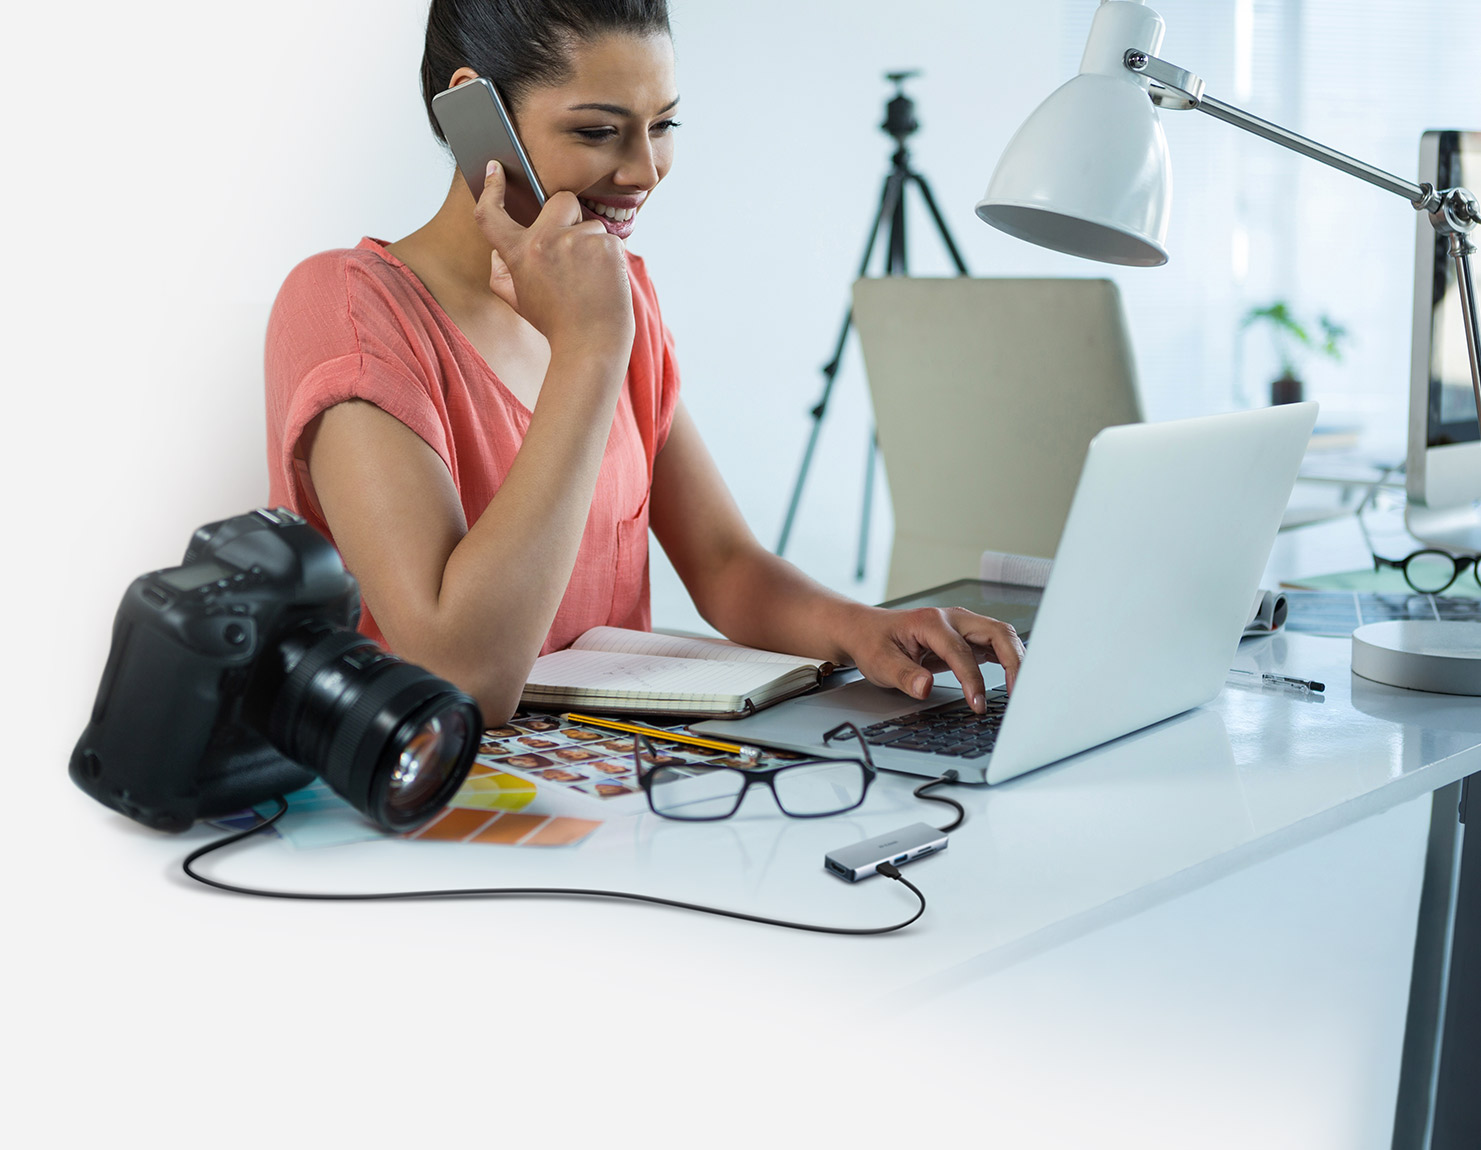 Woman using the DUB-M530 5-in-1 USB-C Hub with HDMI/Card Reader connected to a laptop and a camera